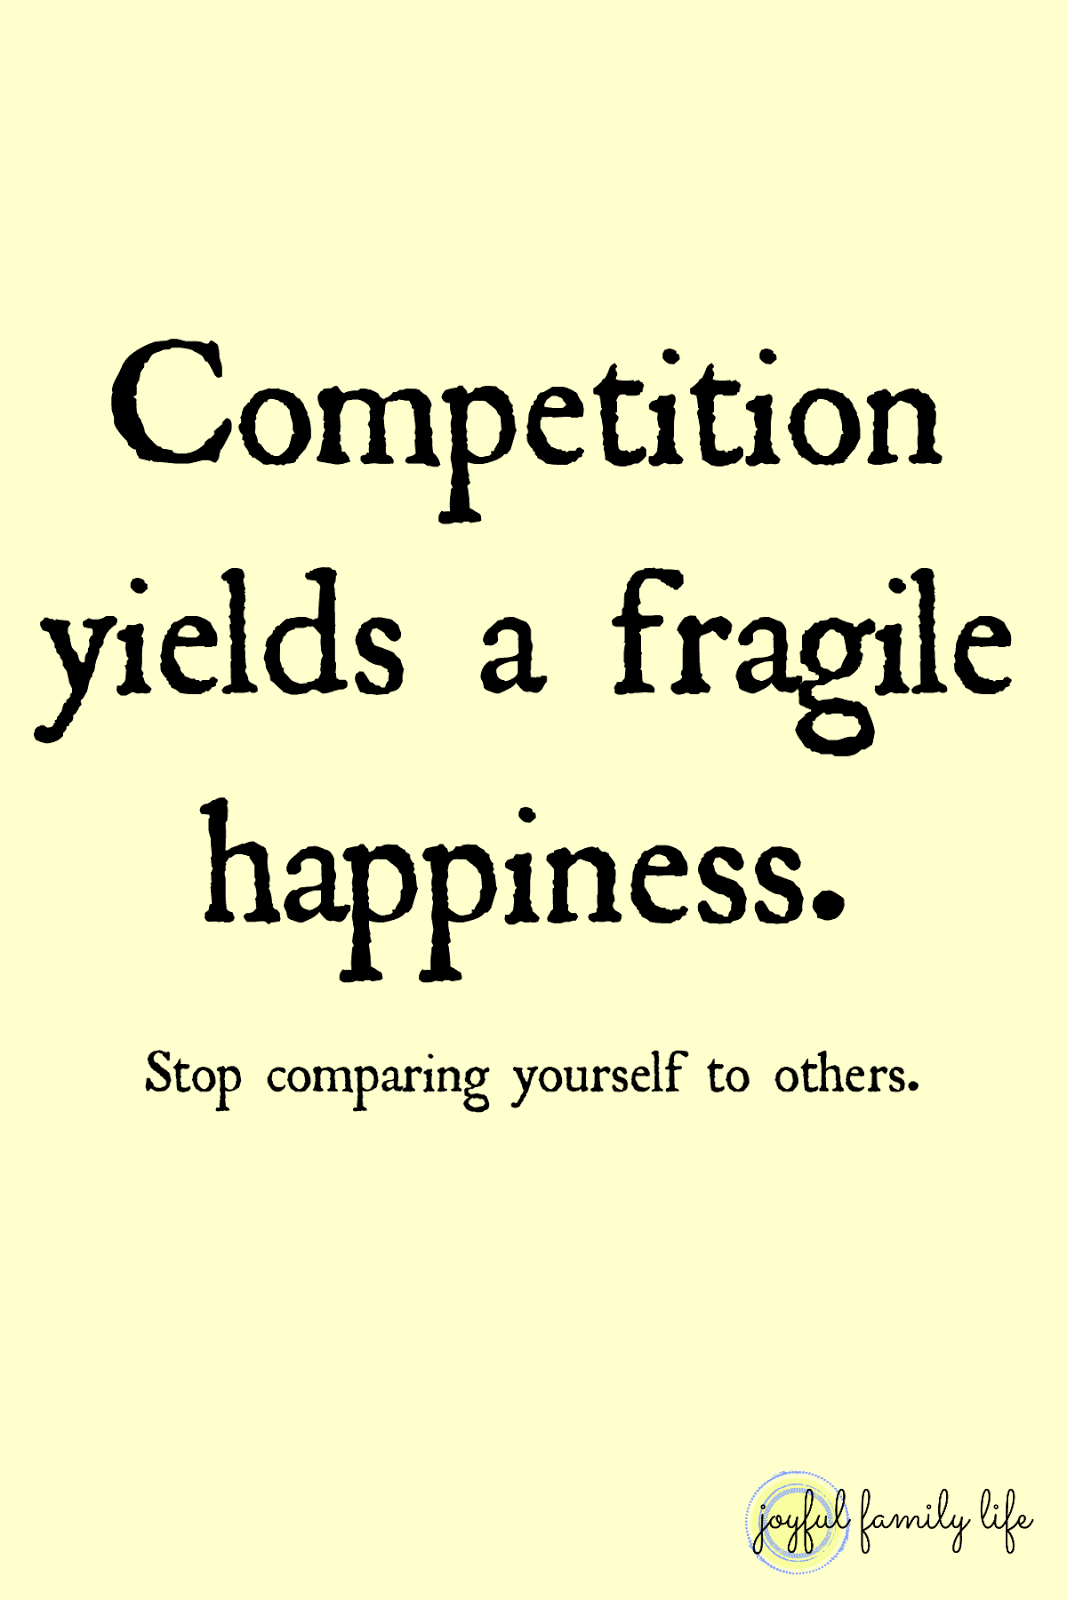 Less Comparing, More Happiness